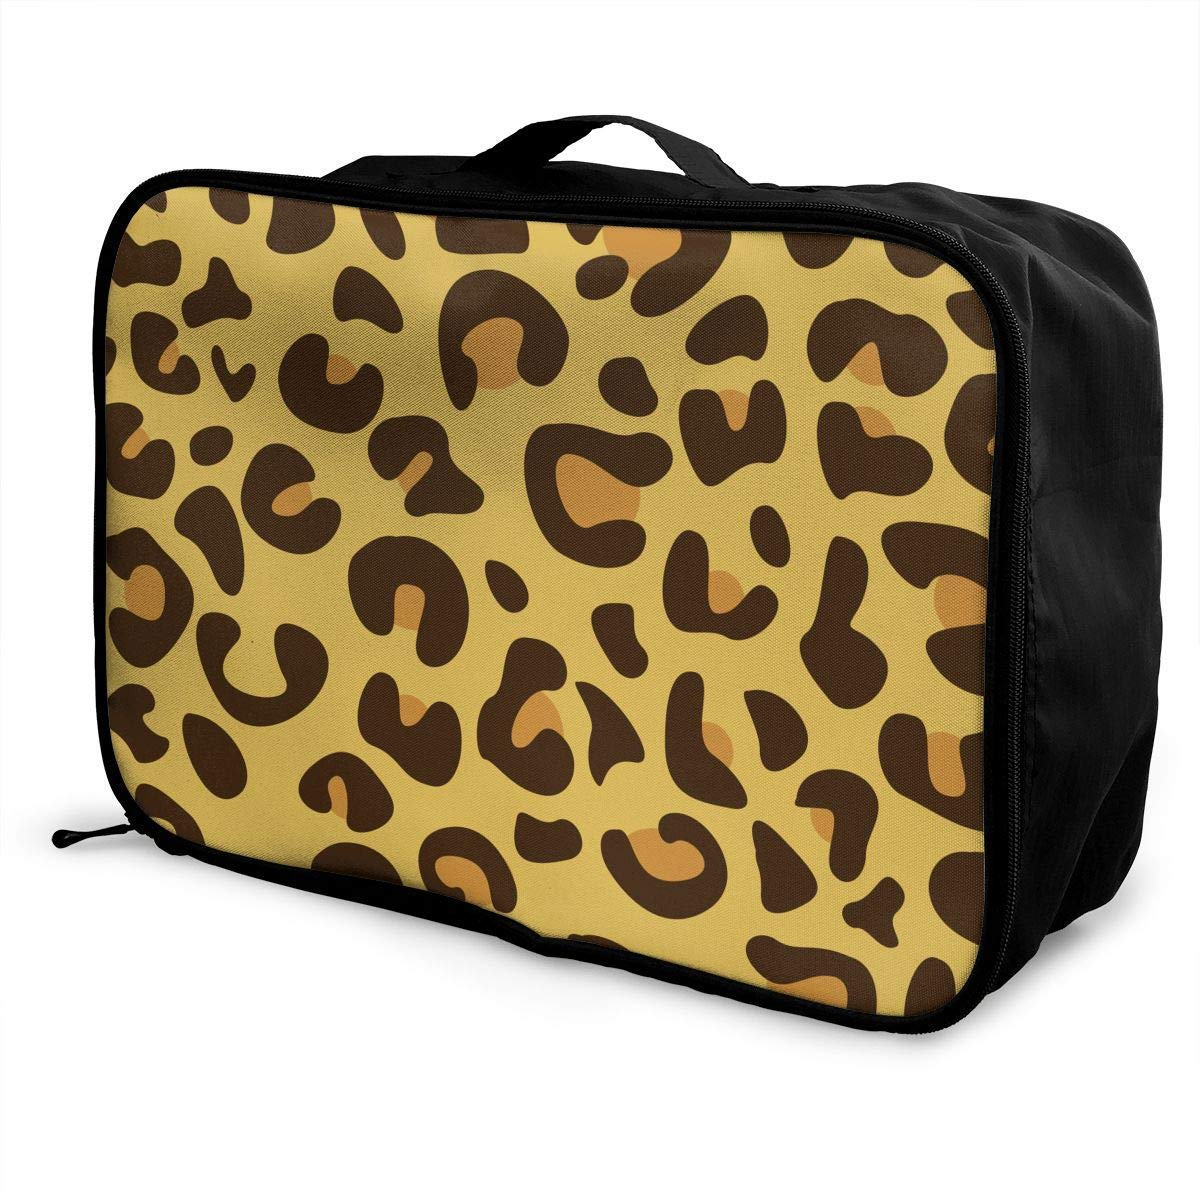 JTRVW Luggage Bags for Travel Portable Luggage Duffel Bag Leopard Skin Travel Bags Carry-on in Trolley Handle